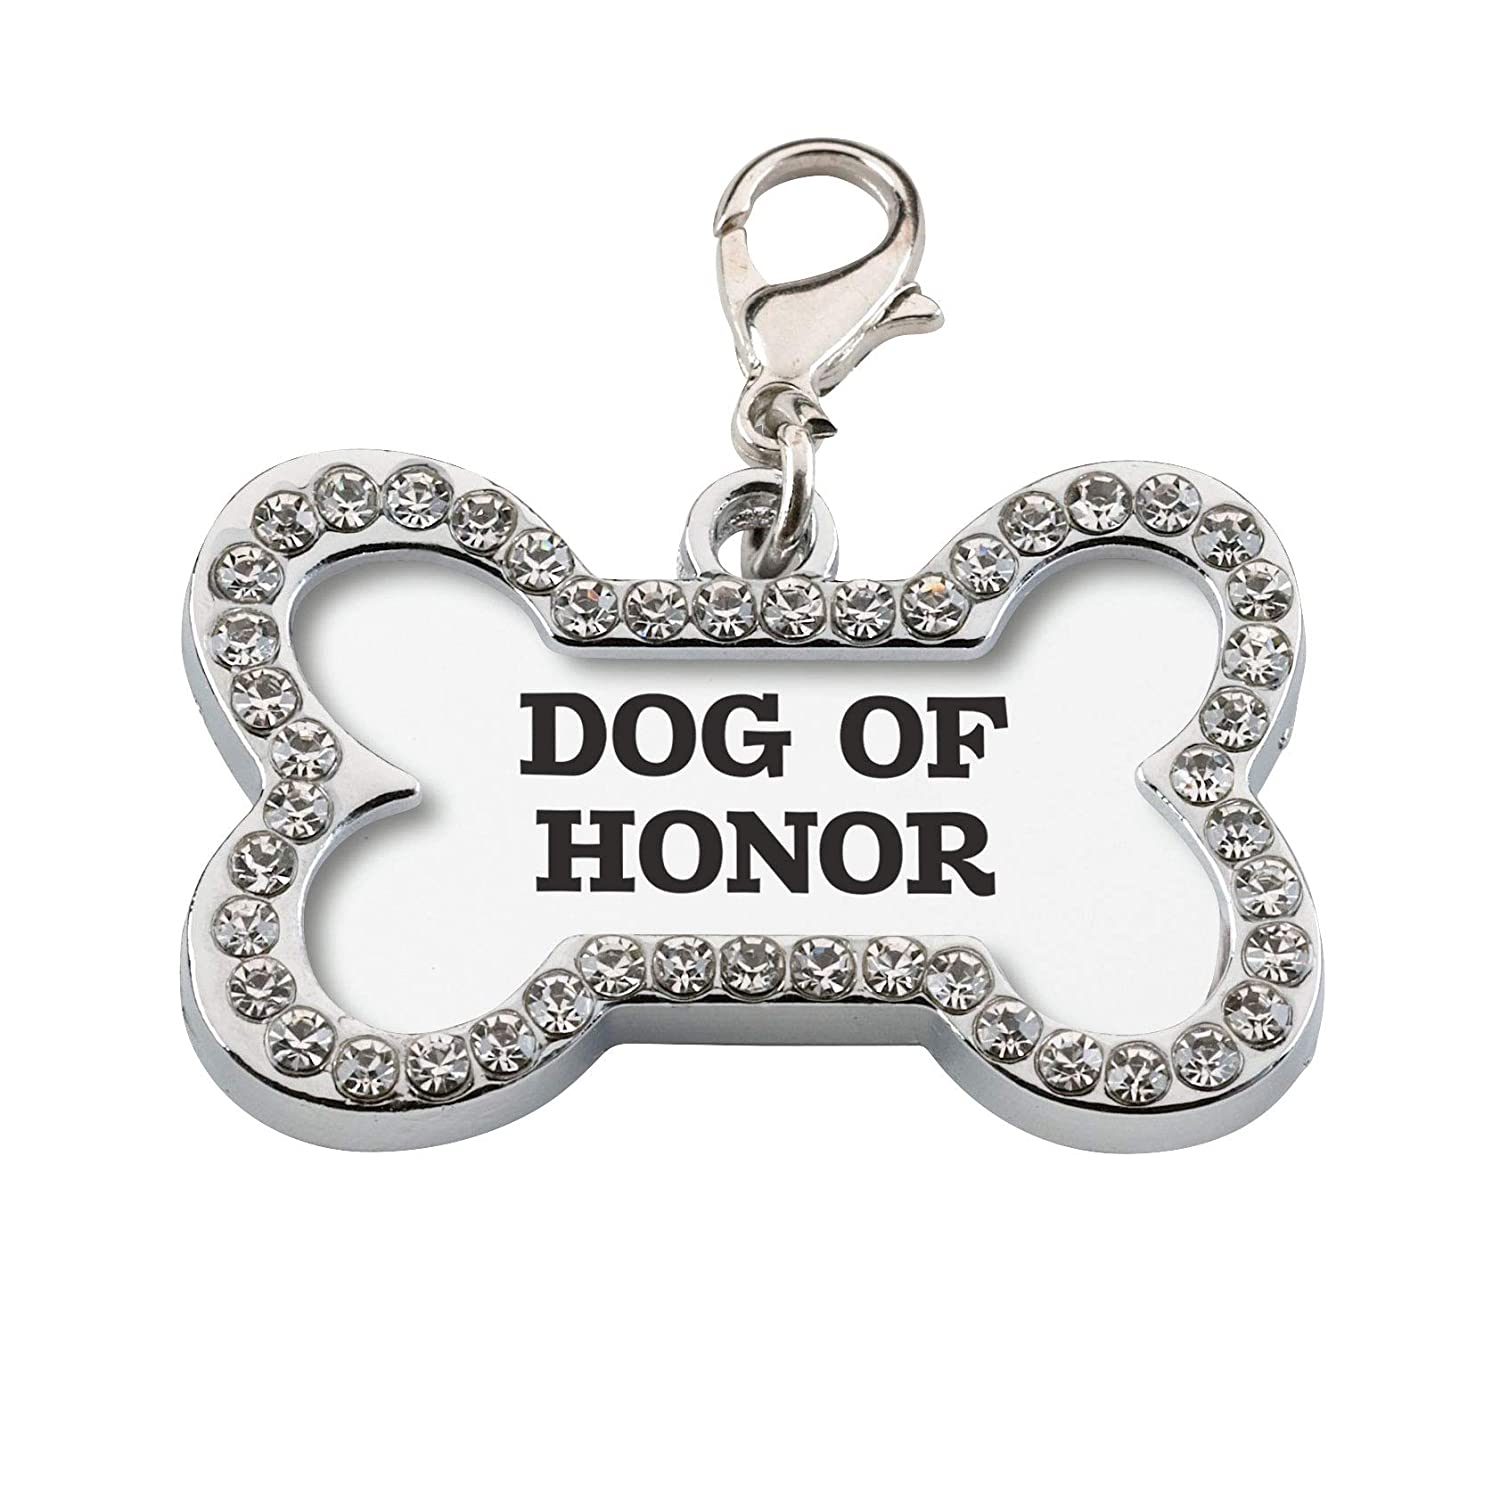 Lillian Rose PA135 DH Honor Wedding Dog Collar Charm, Measures 1.5